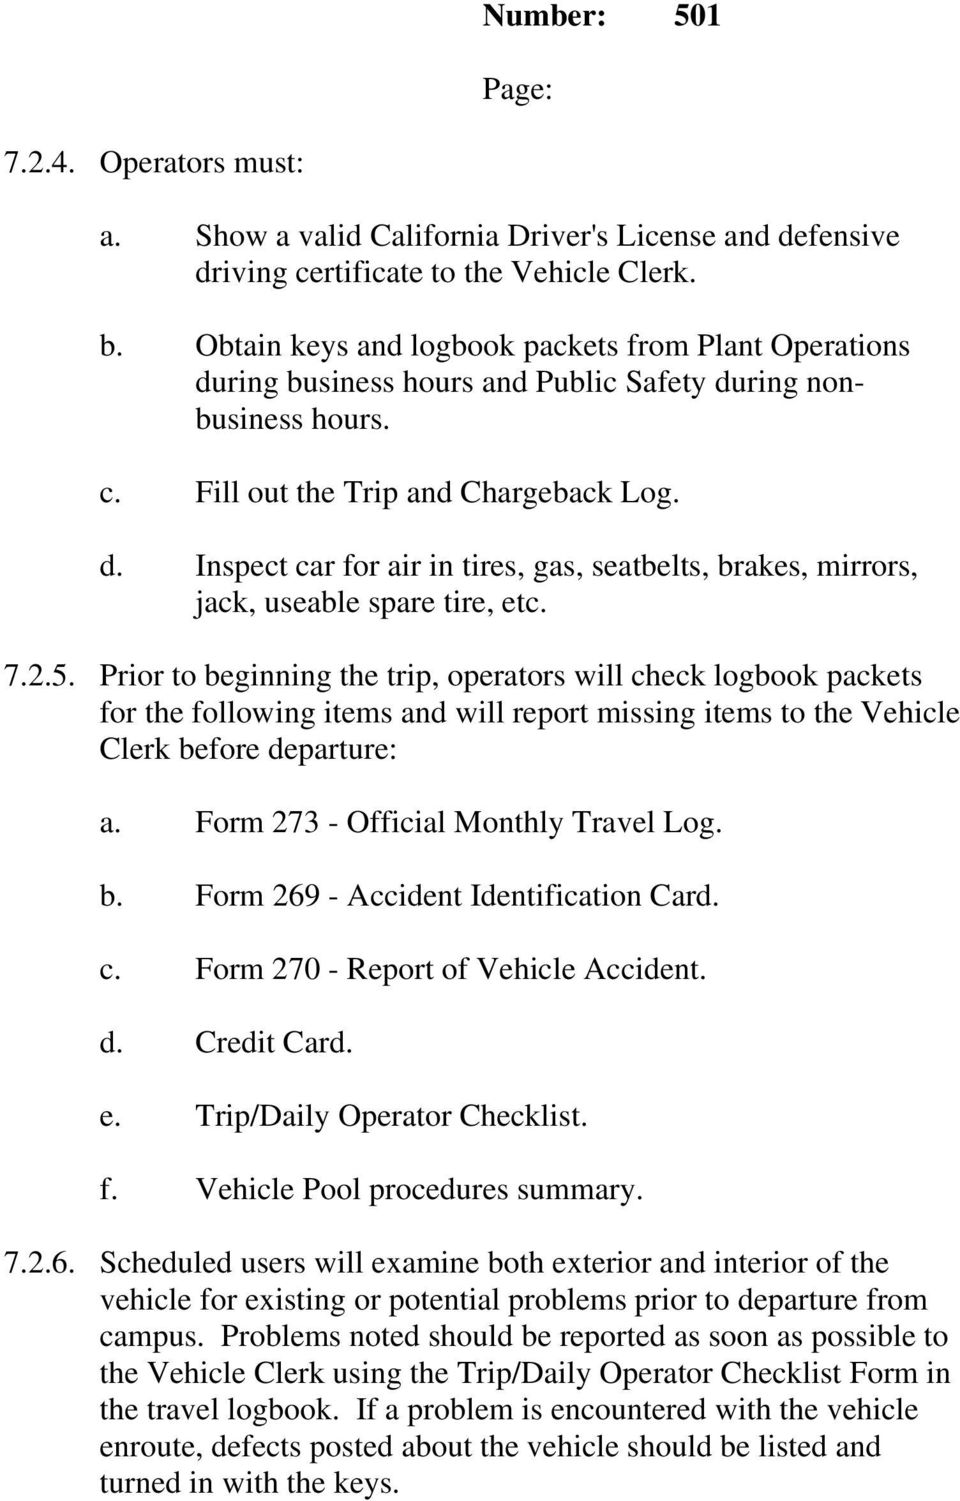 7.2.5. Prior to beginning the trip, operators will check logbook packets for the following items and will report missing items to the Vehicle Clerk before departure: a.